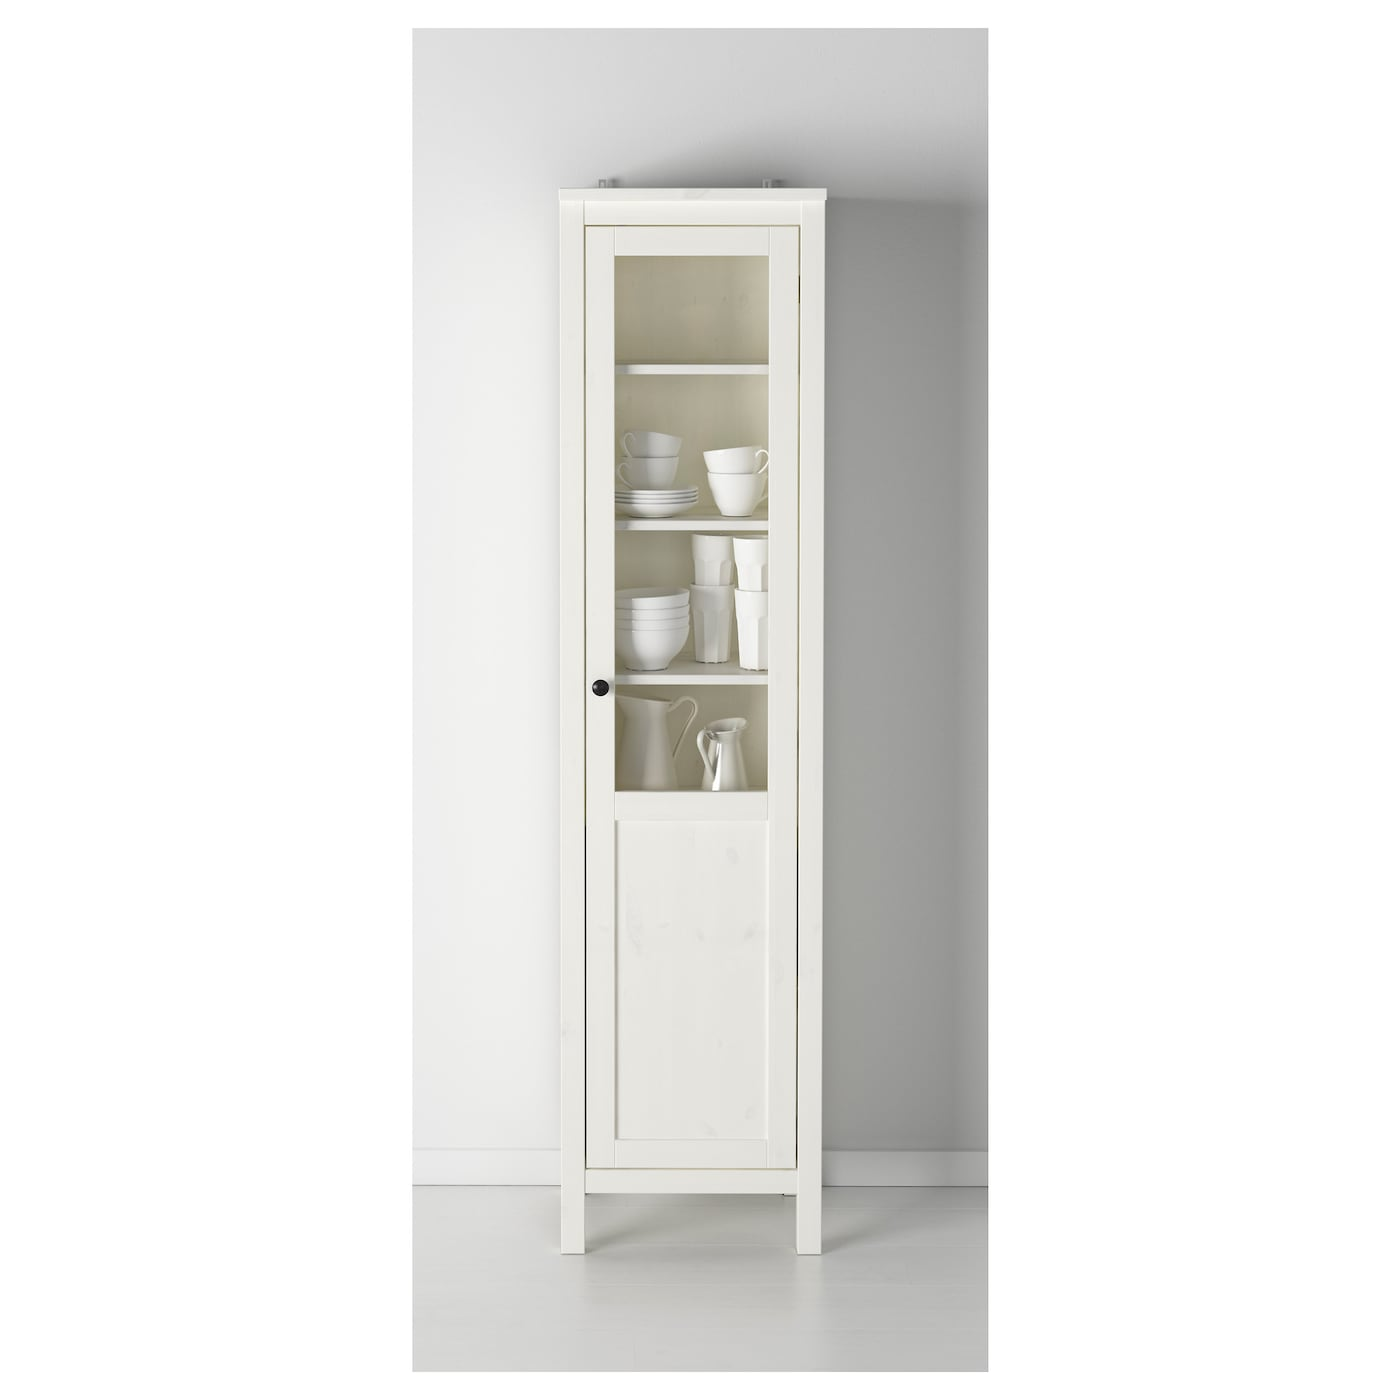 hemnes l ment avec porte panneau verre teint blanc 49x197 cm ikea. Black Bedroom Furniture Sets. Home Design Ideas